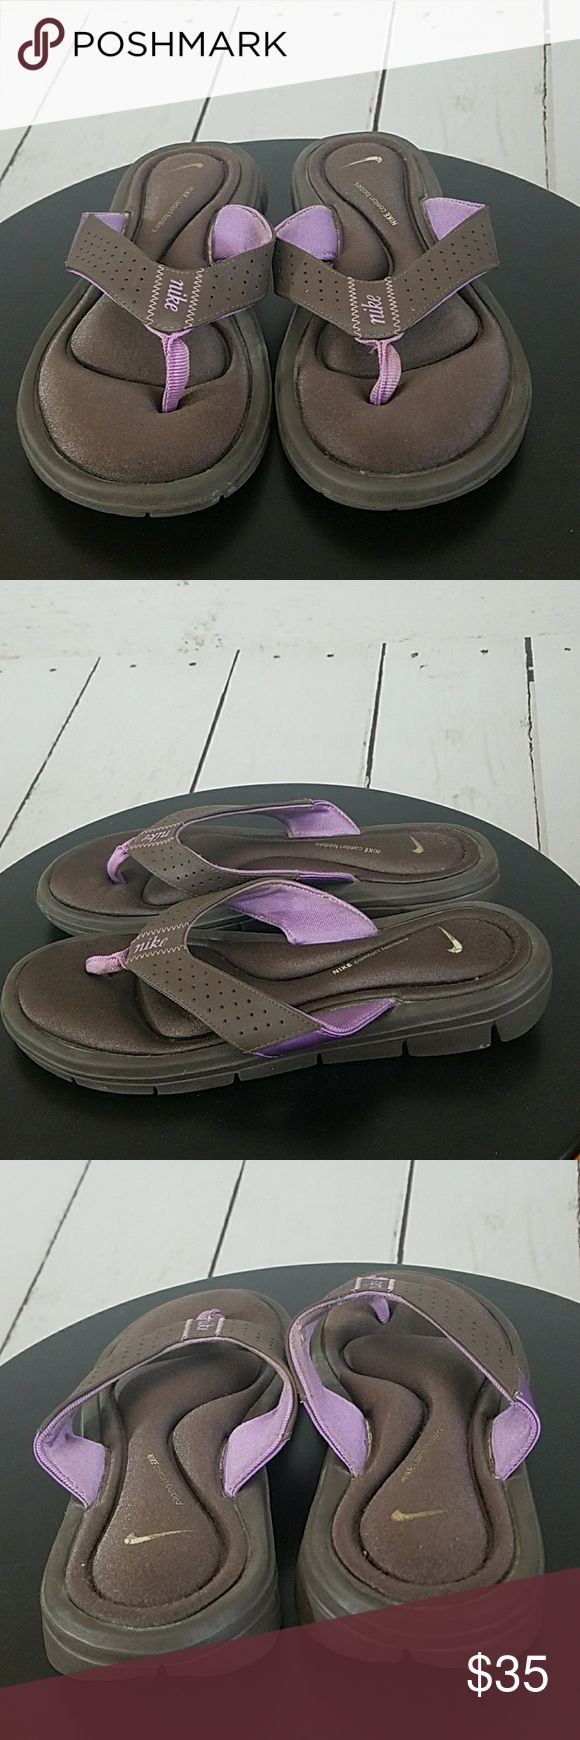 Nike Women's Sandals Size 6 Comfort Brown Purple Nike Women's Sandals Size 6 Comfort Brown Purple Gently used may have some lite markings. These are preowned sandals. Nike Shoes Sandals